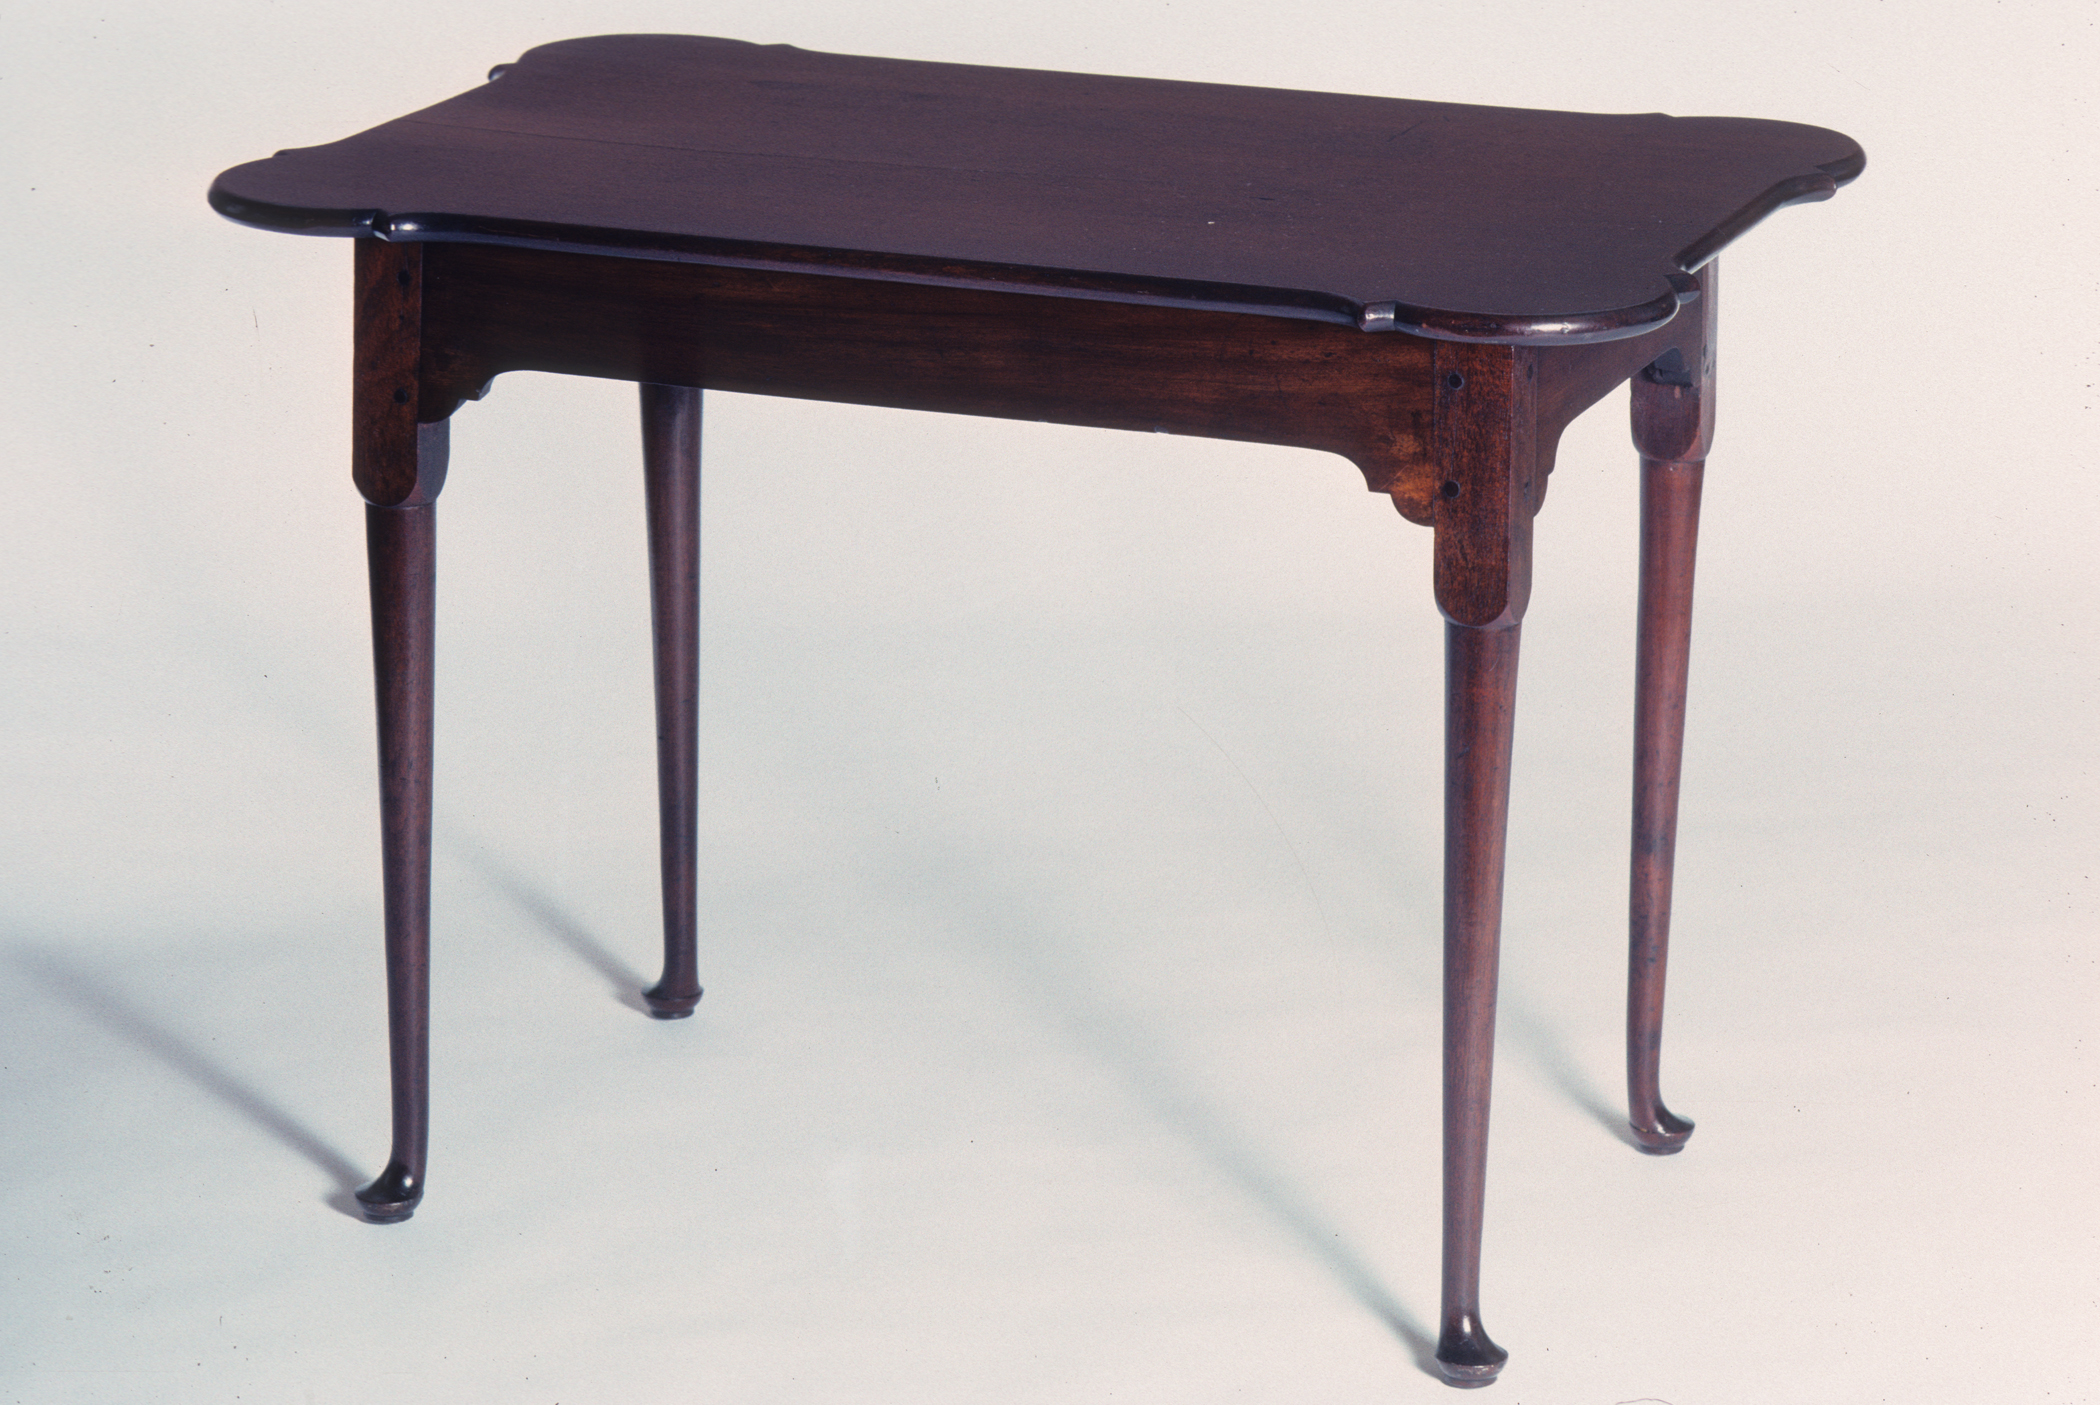 1964.1072 Table, view 1